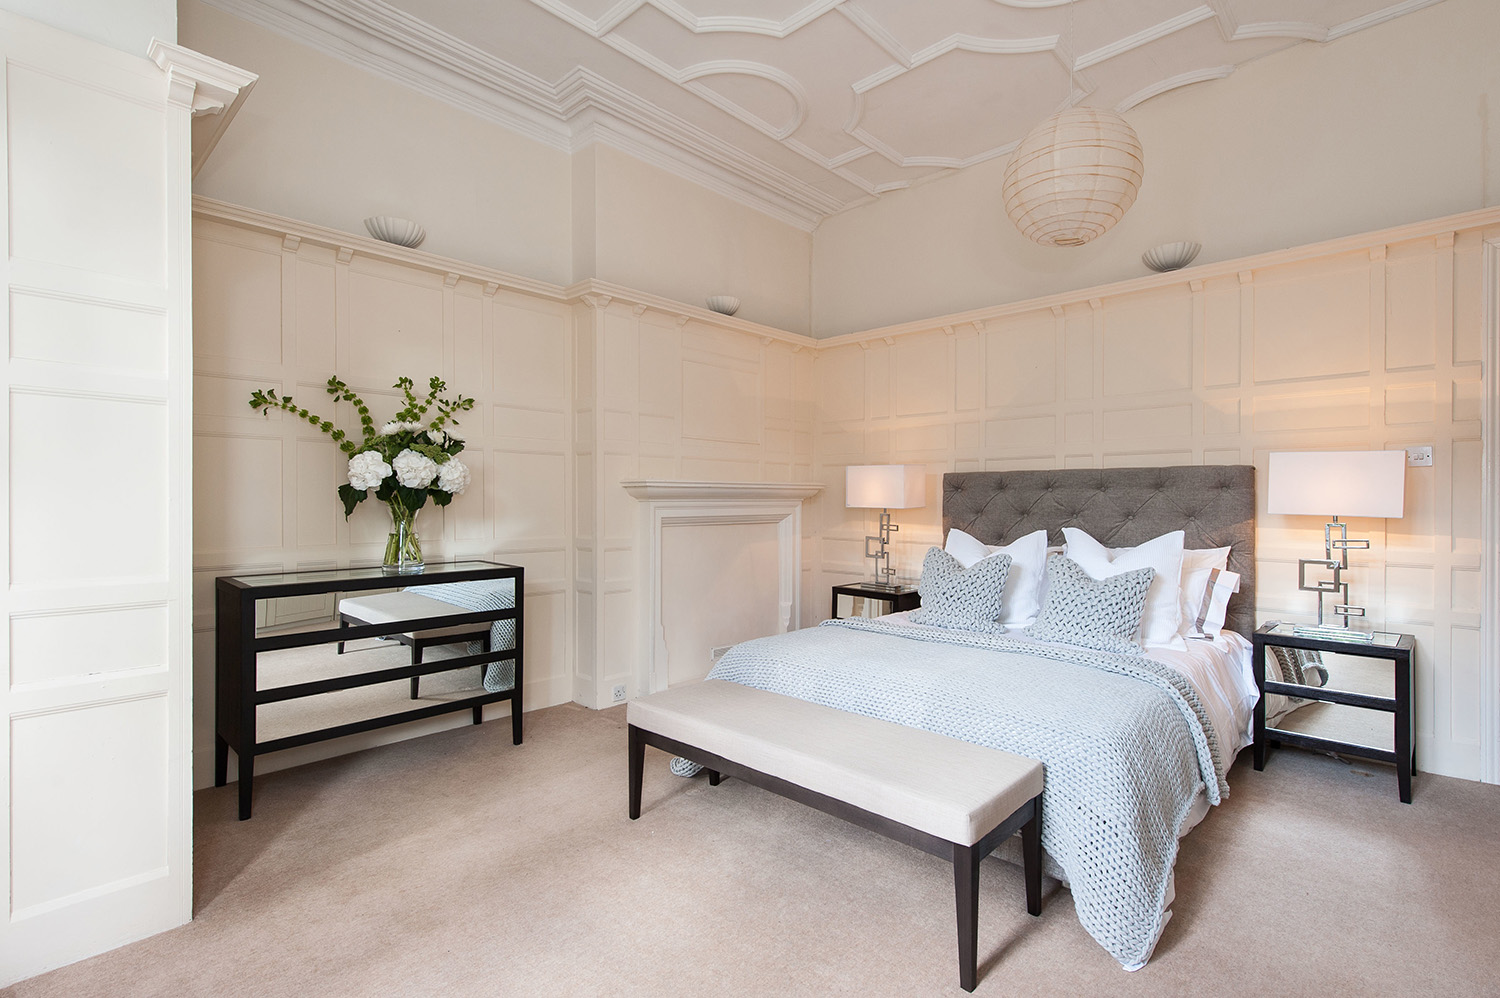 Design Box London - Interior Design - Hampstead Pied A Terre, NW3 - Bedroom